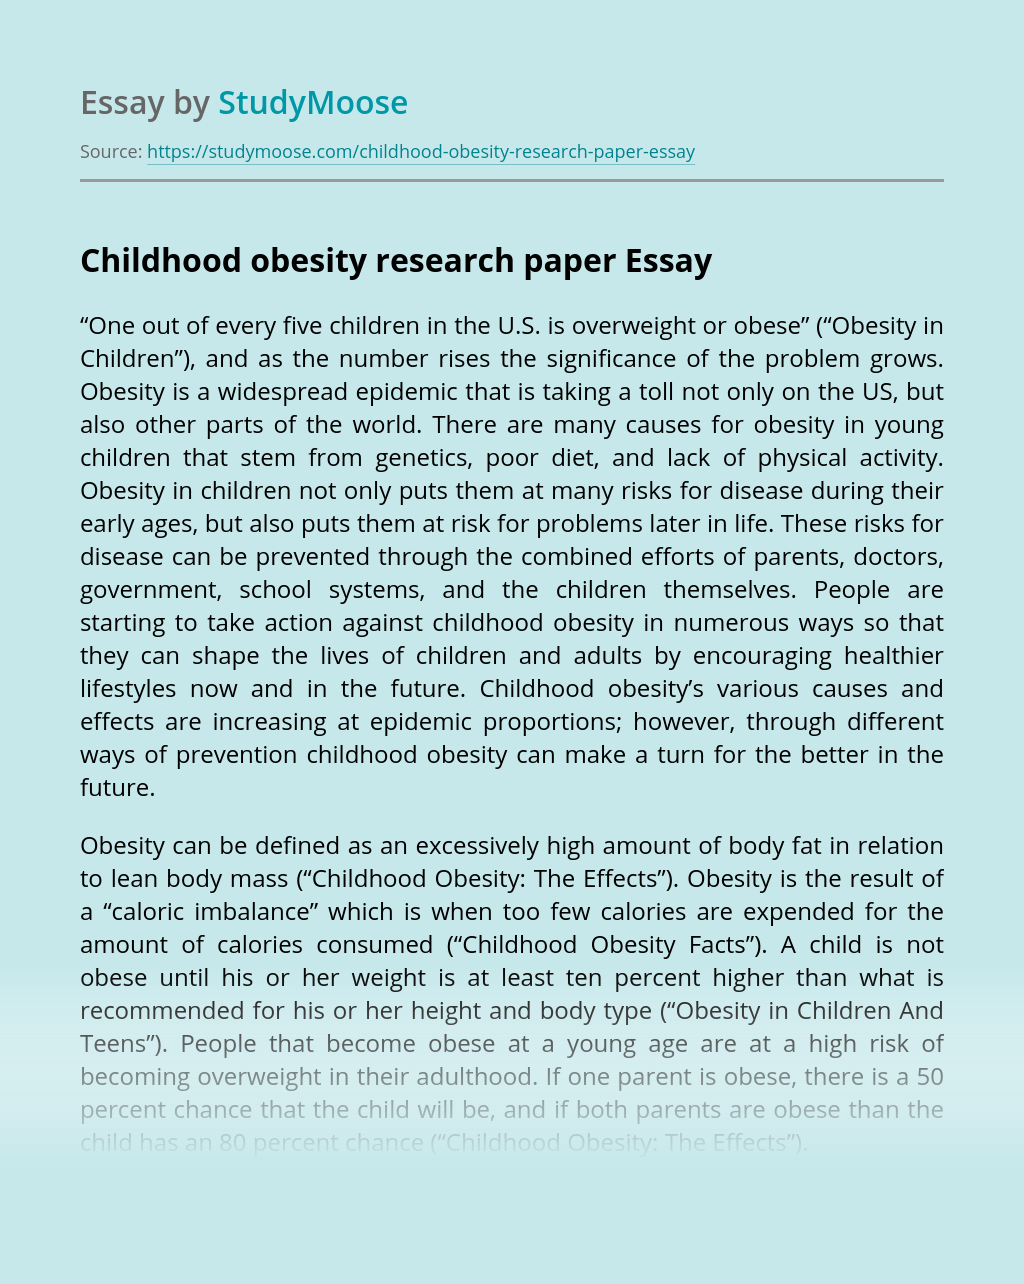 Childhood obesity research paper